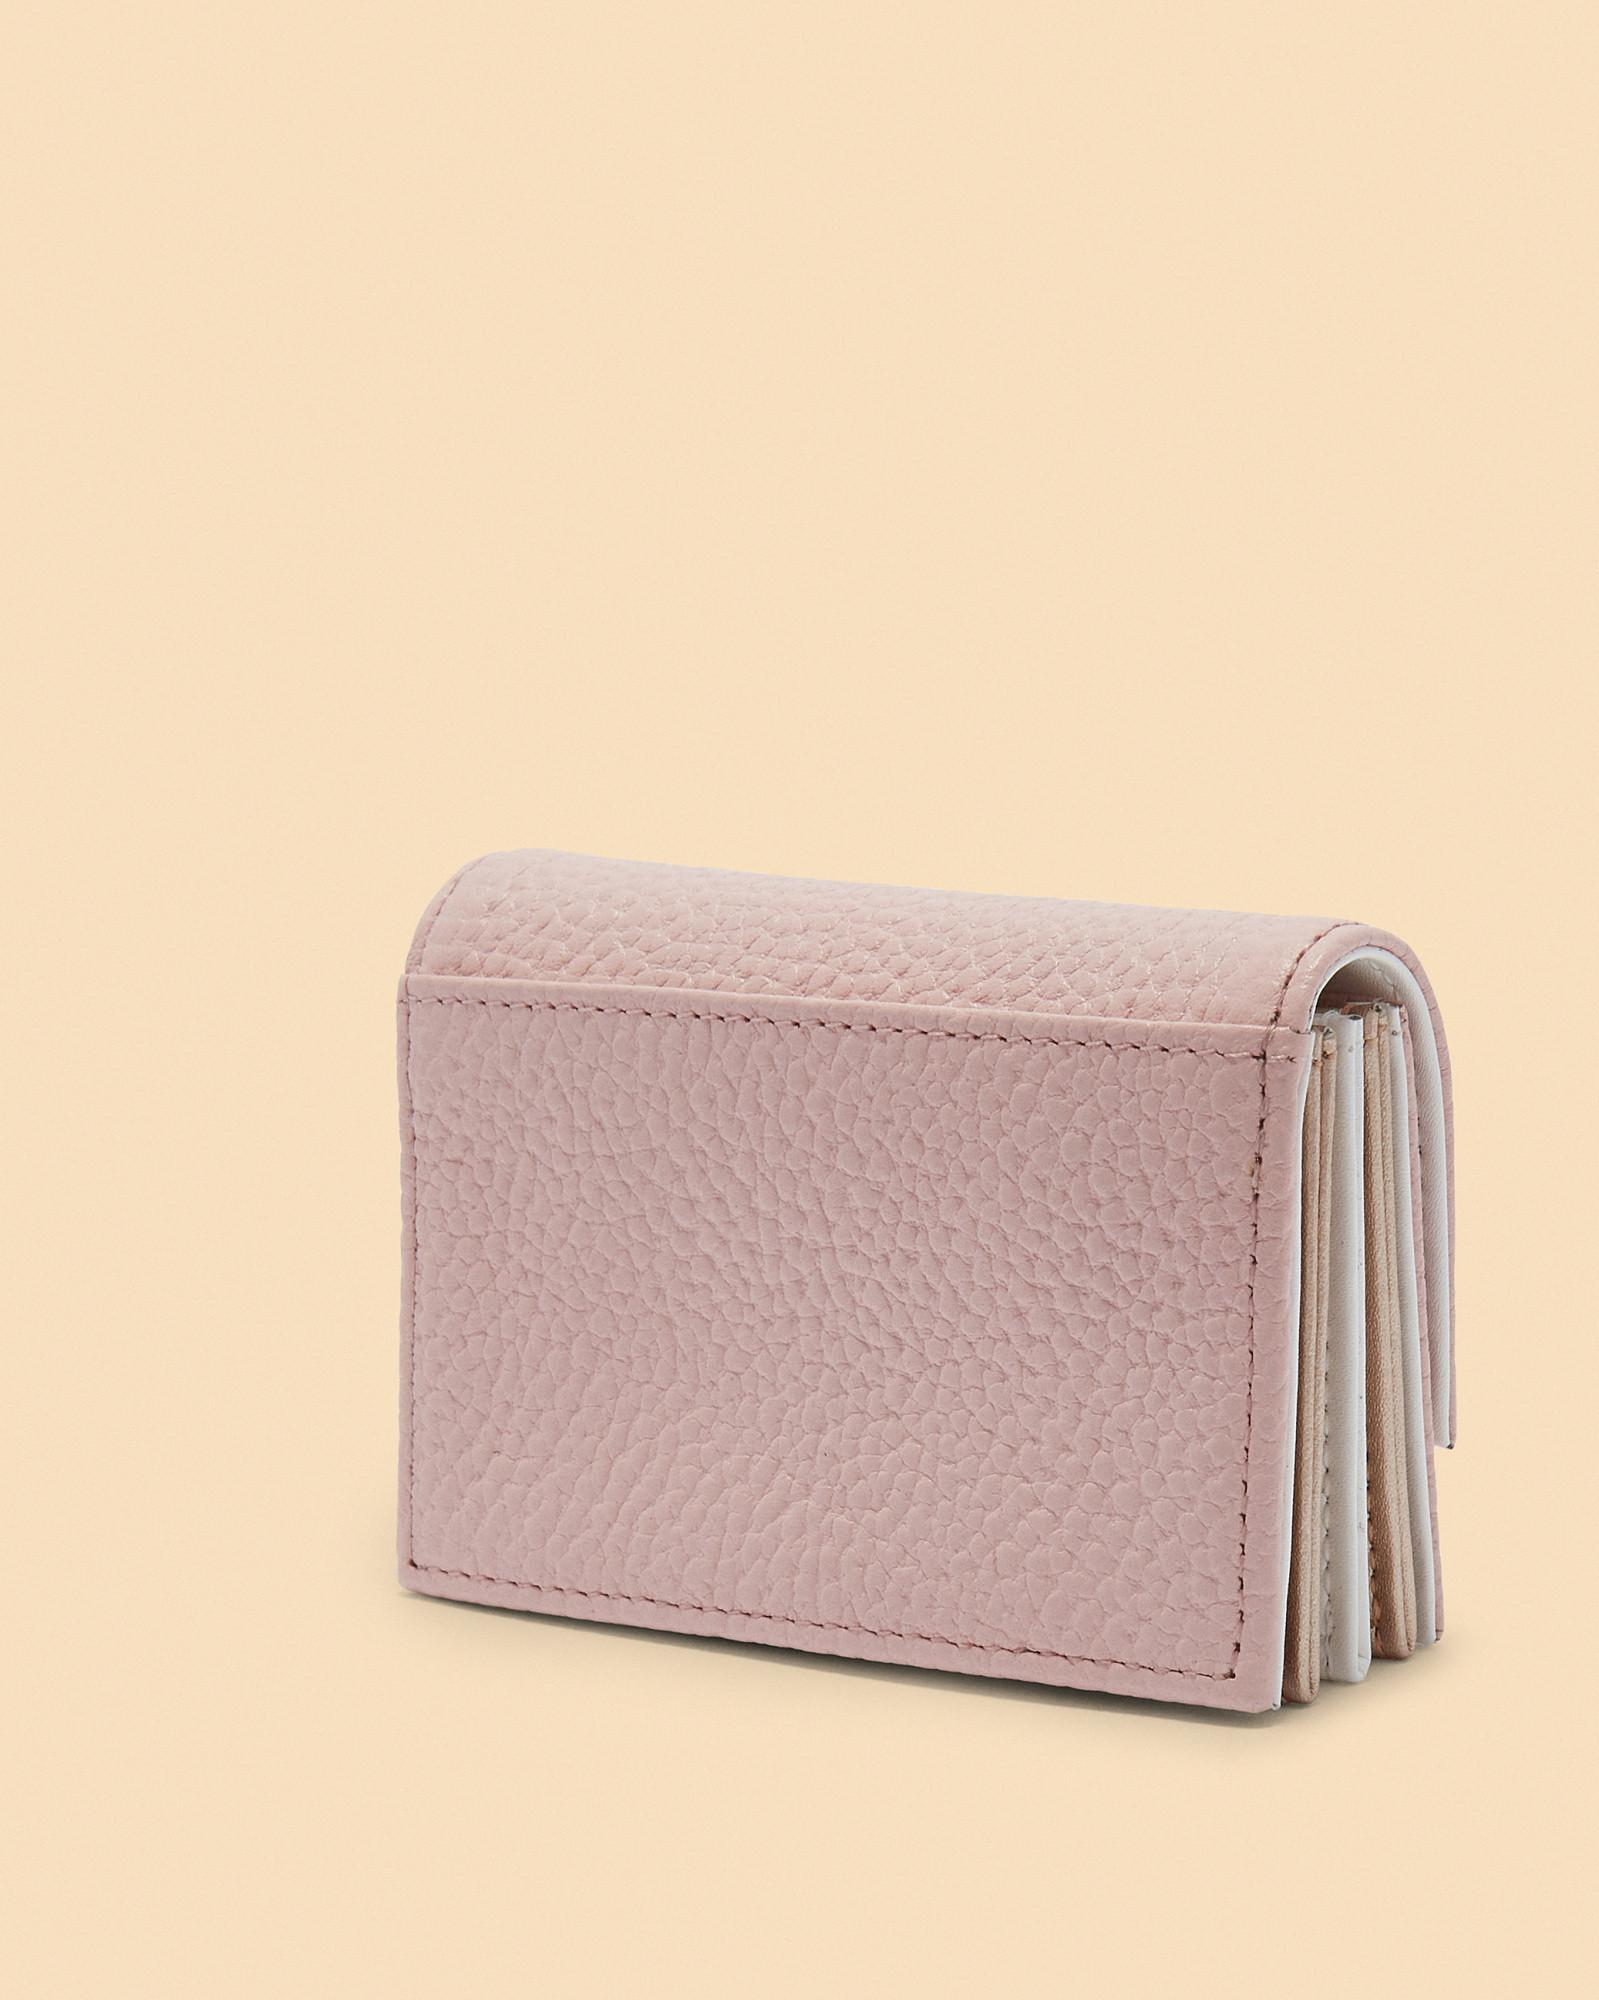 70eb3bda0f ted-baker-Light-Pink-Textured-Leather-Concertina-Credit-Card-Holder.jpeg